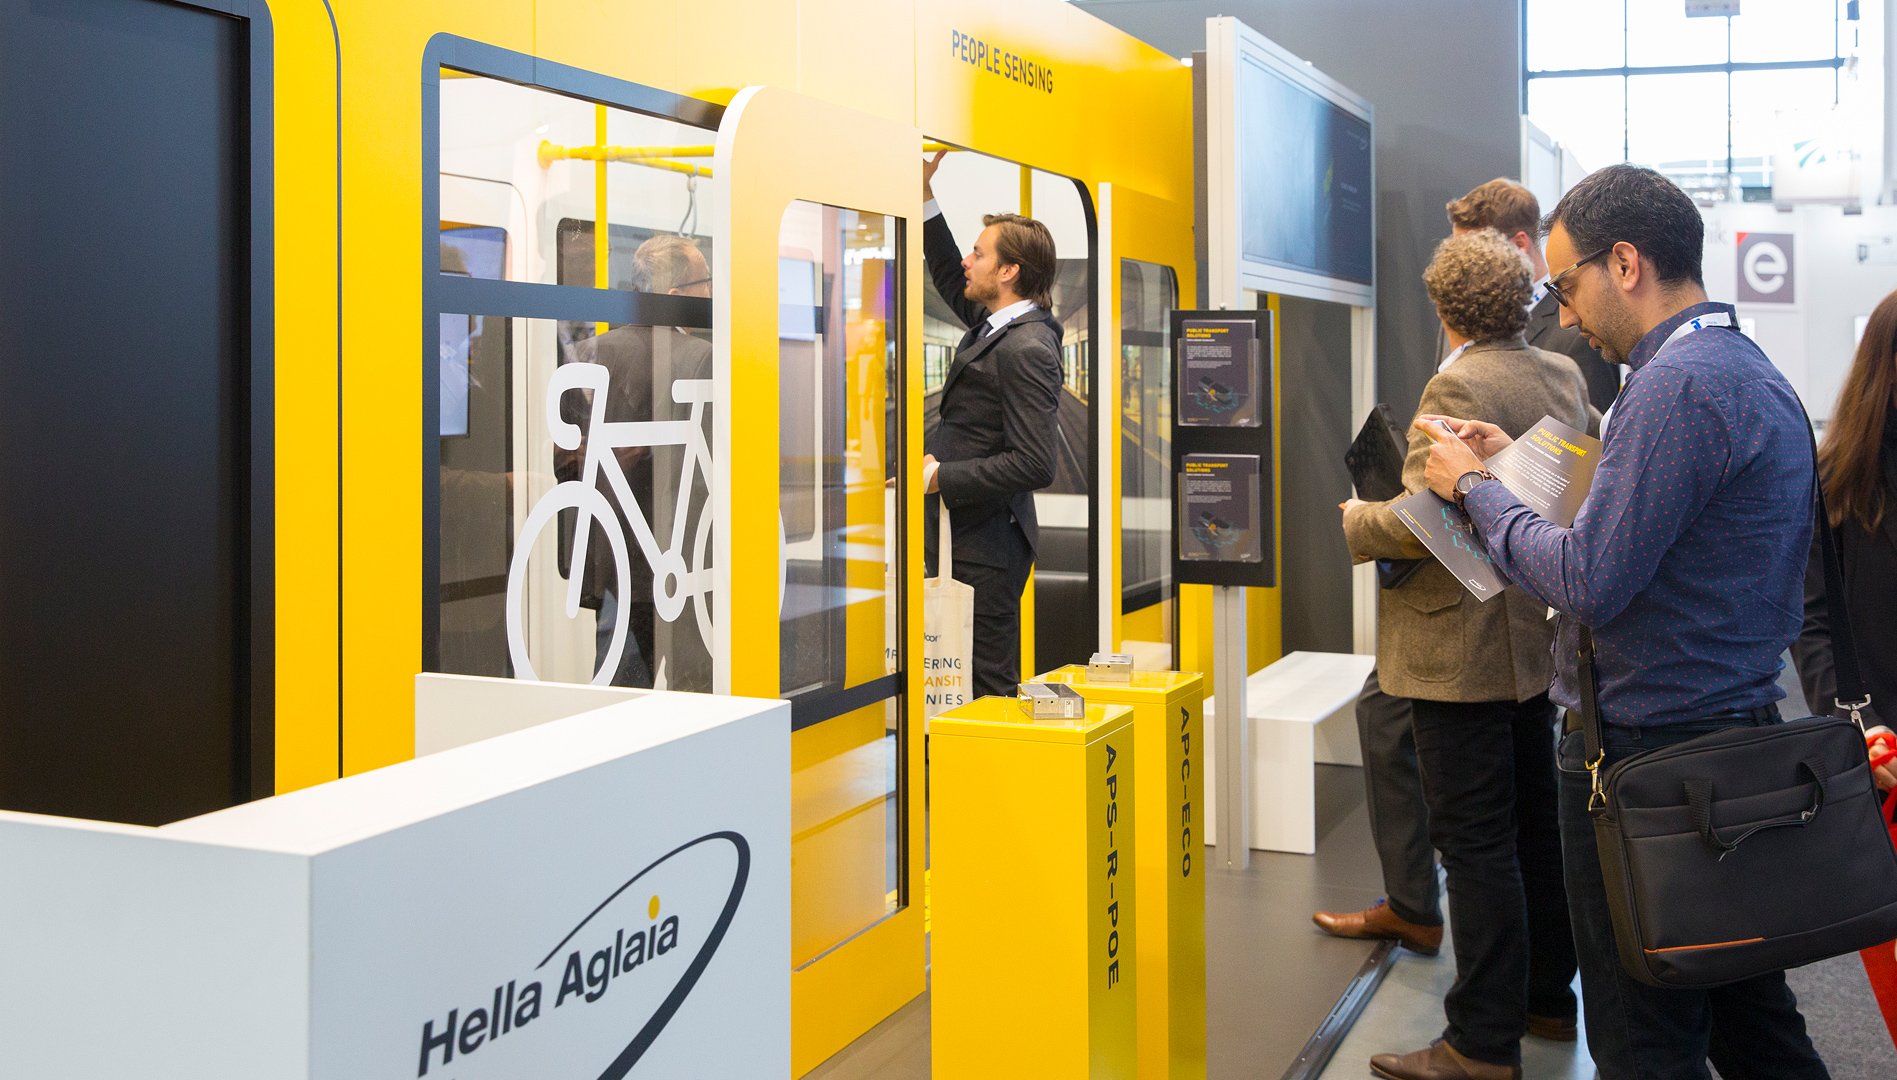 Successful first quarter for People Sensing at three trade fairs.